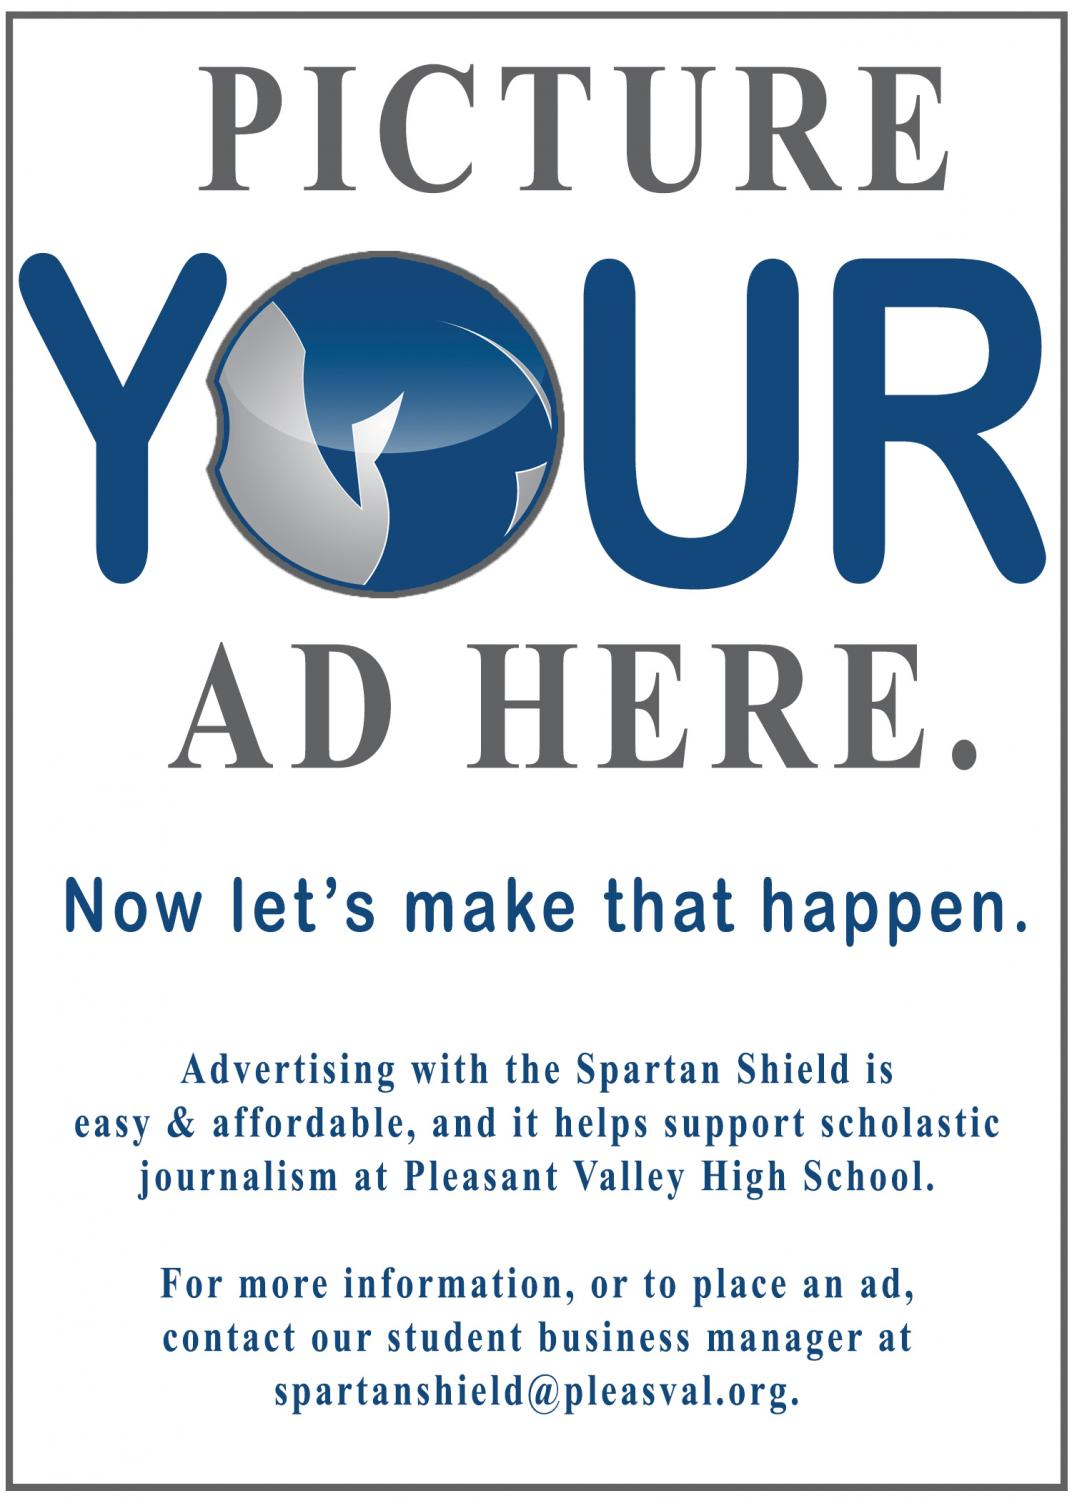 Advertise with the Spartan Shield!